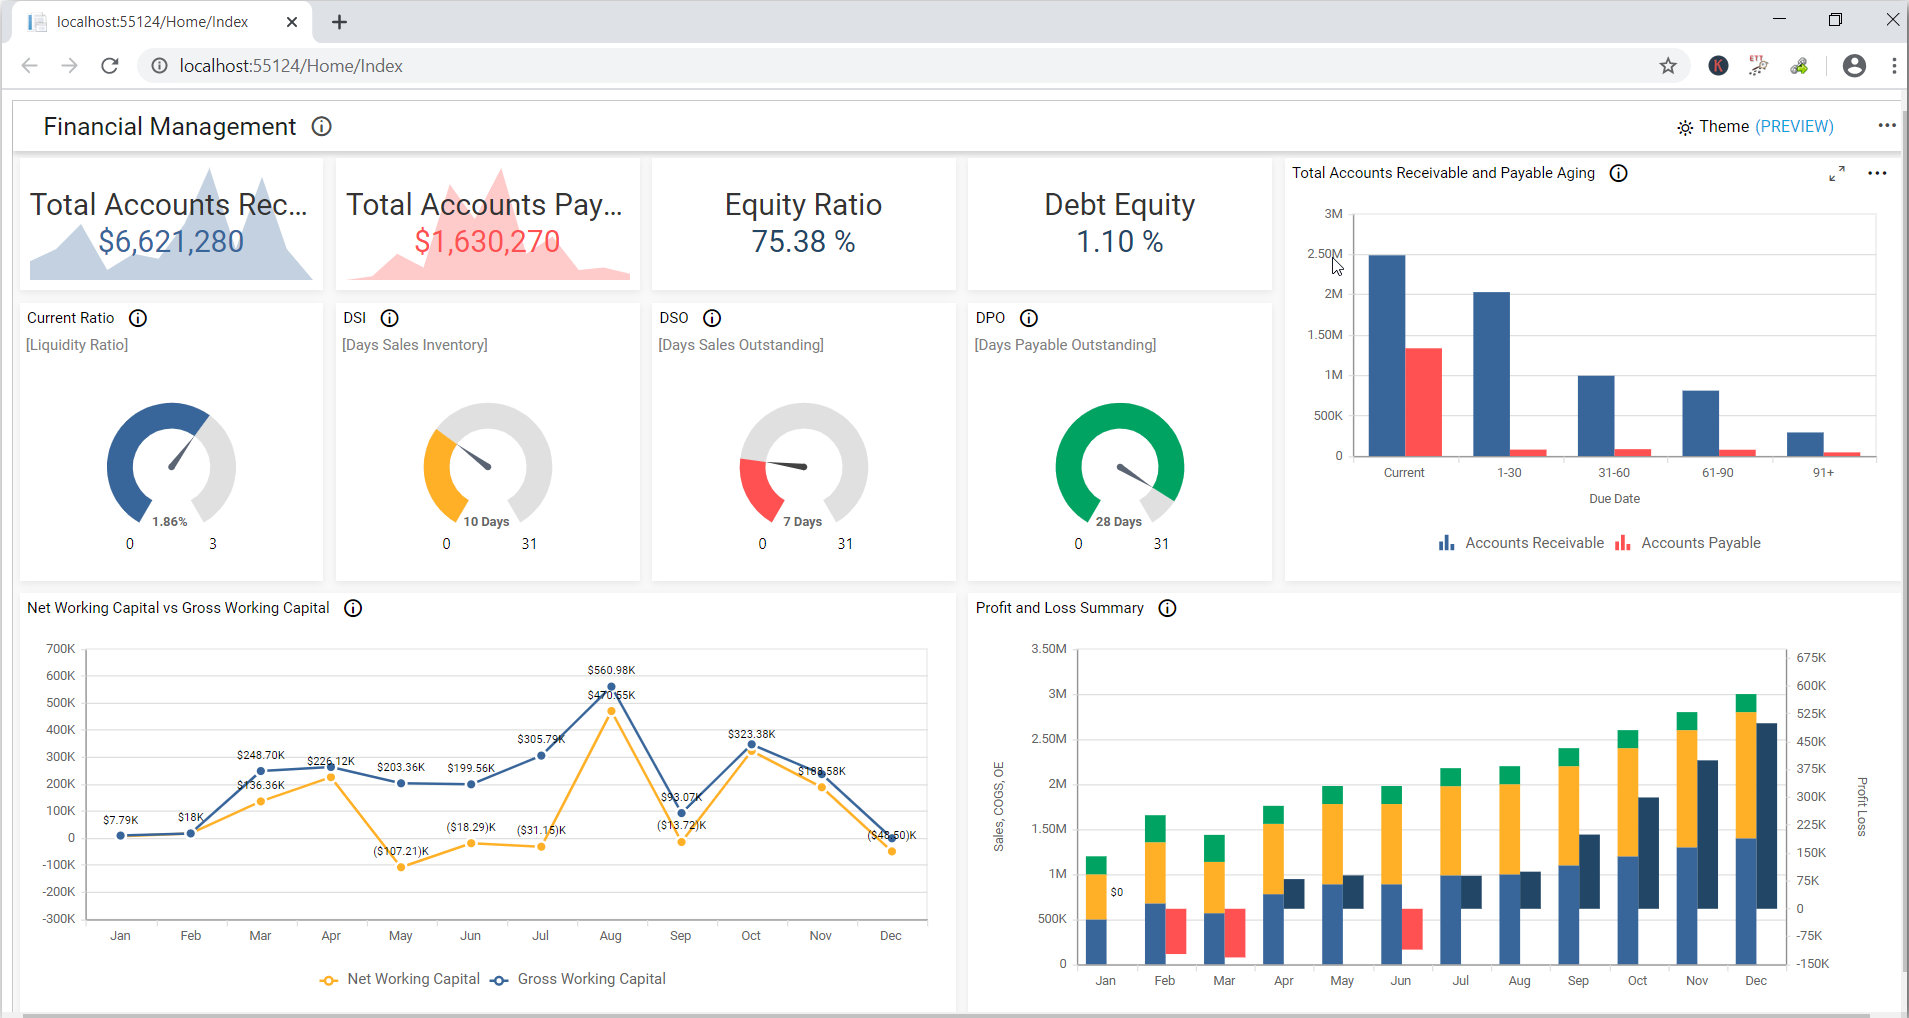 Financial Management Dashboard Embedded into ASP.NET MVC Application